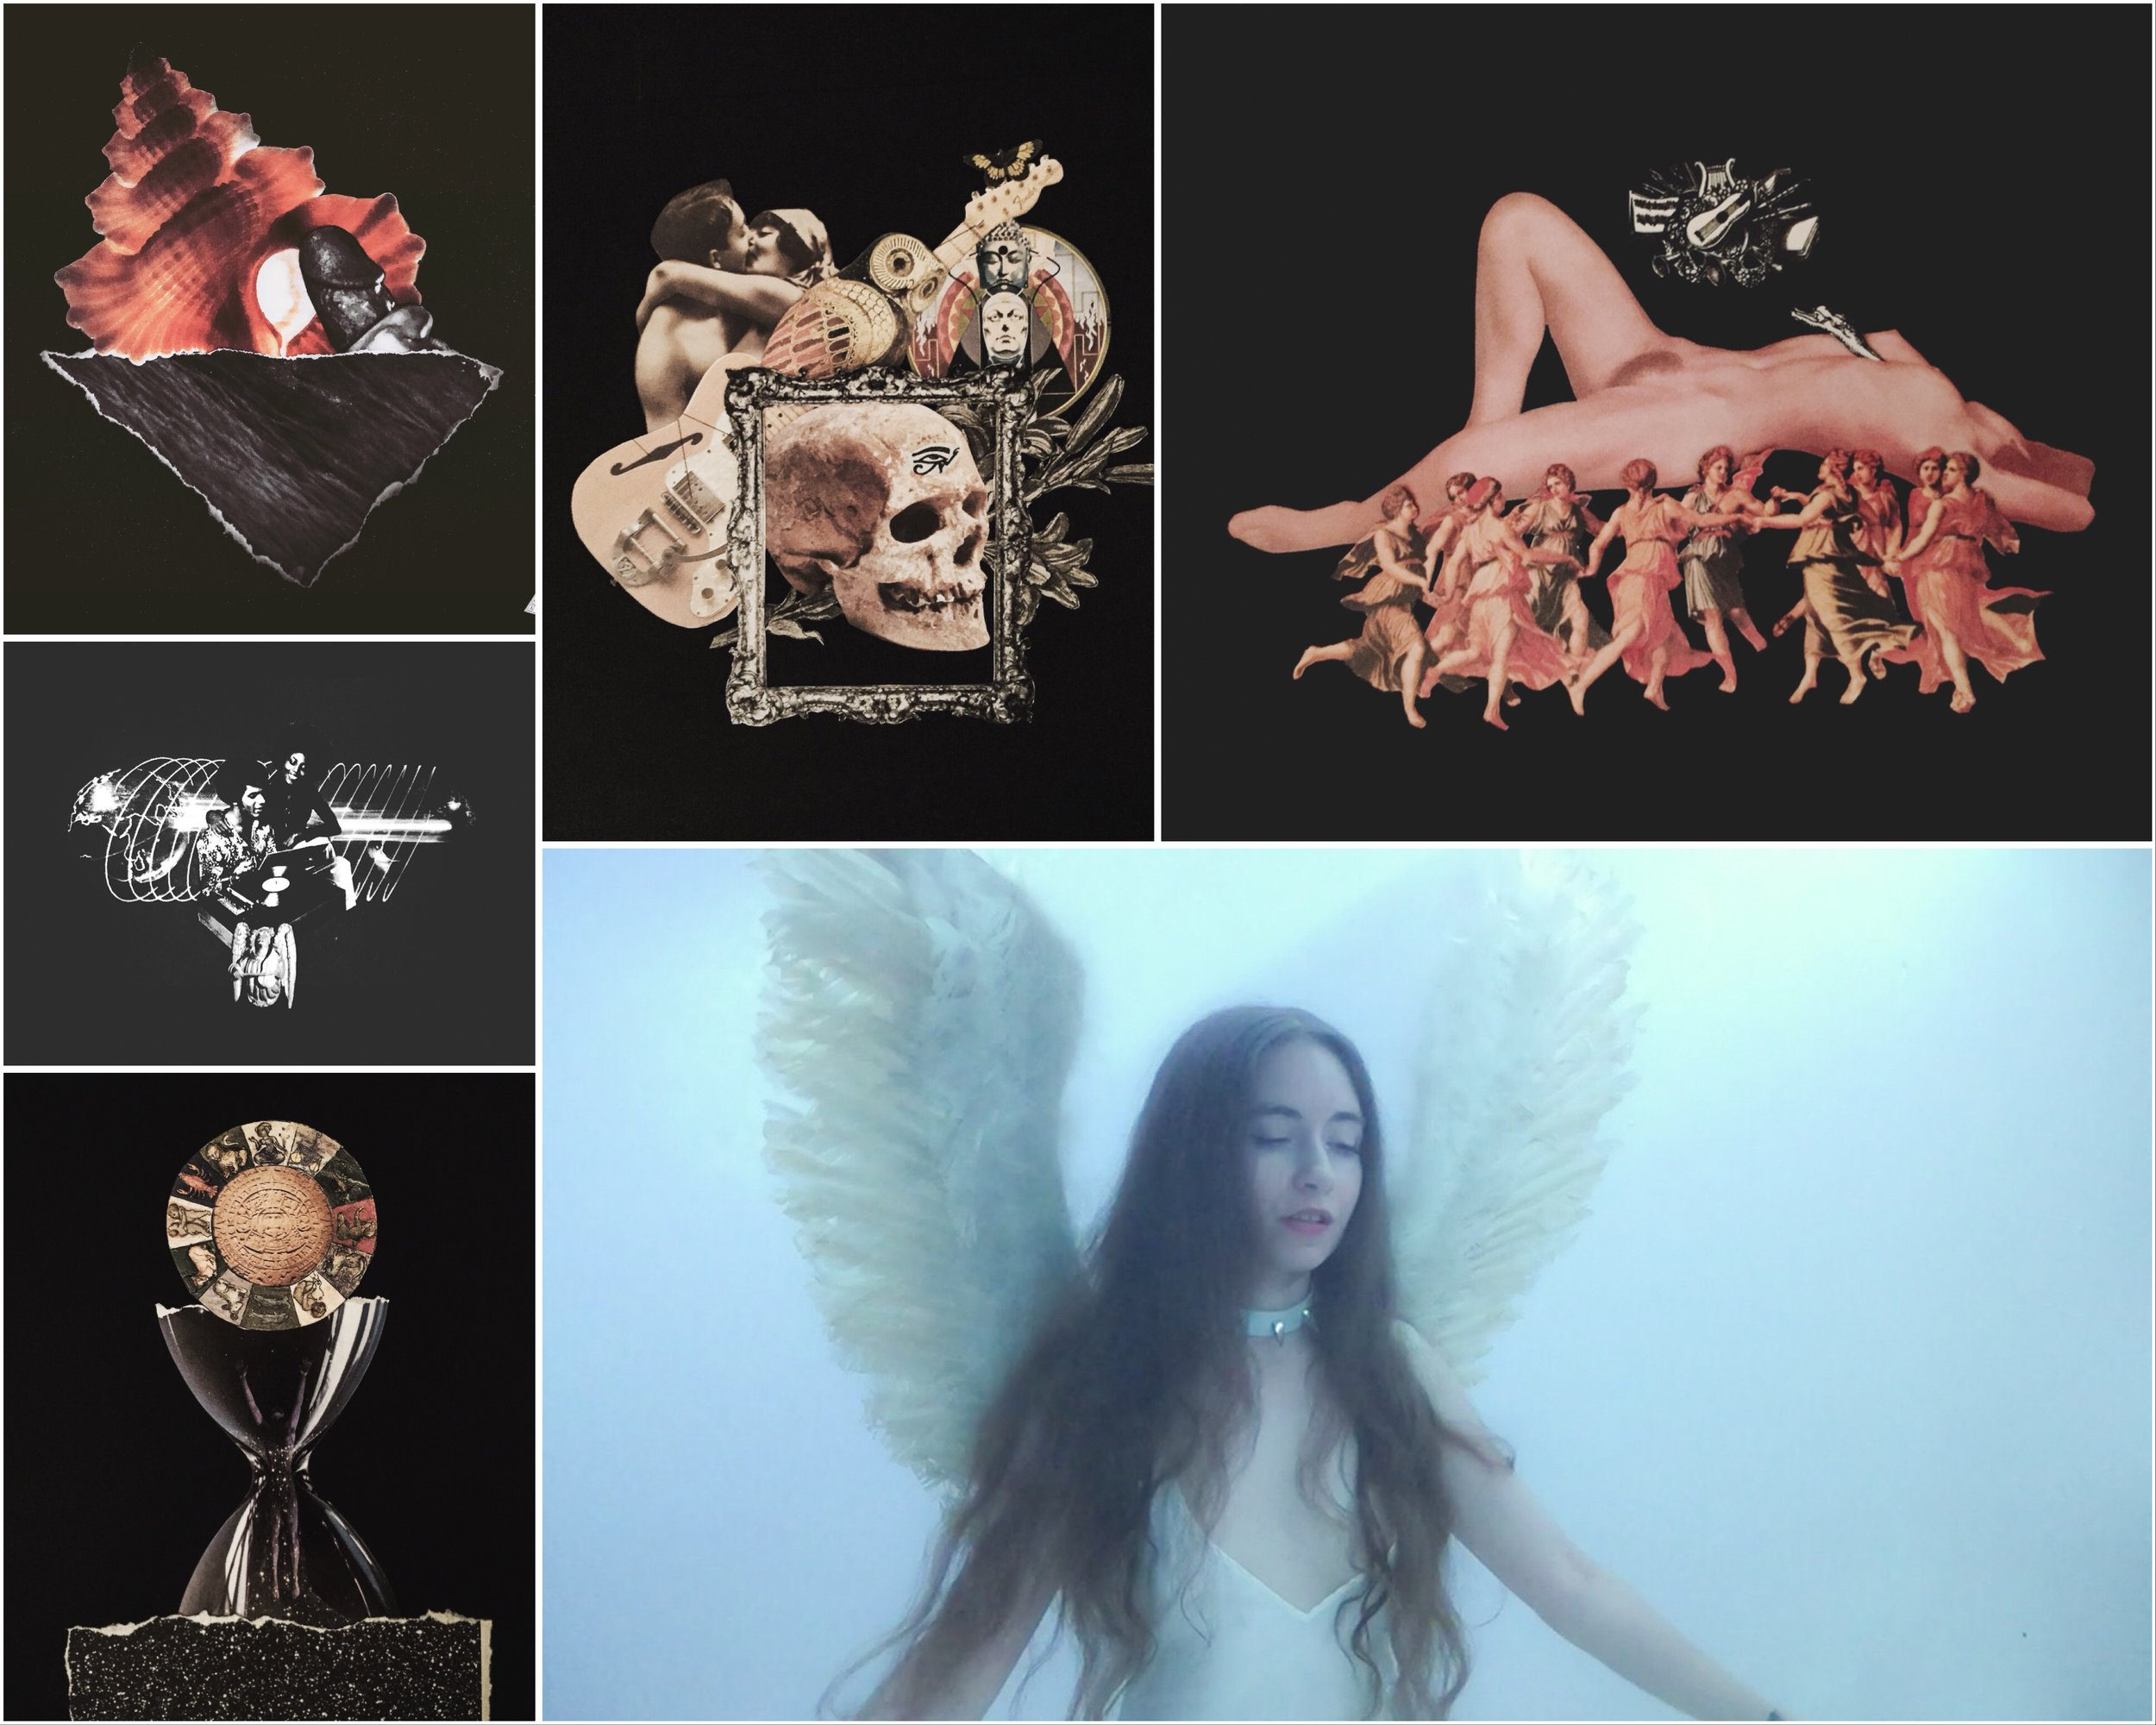 An overview of my creative works made in the past week.